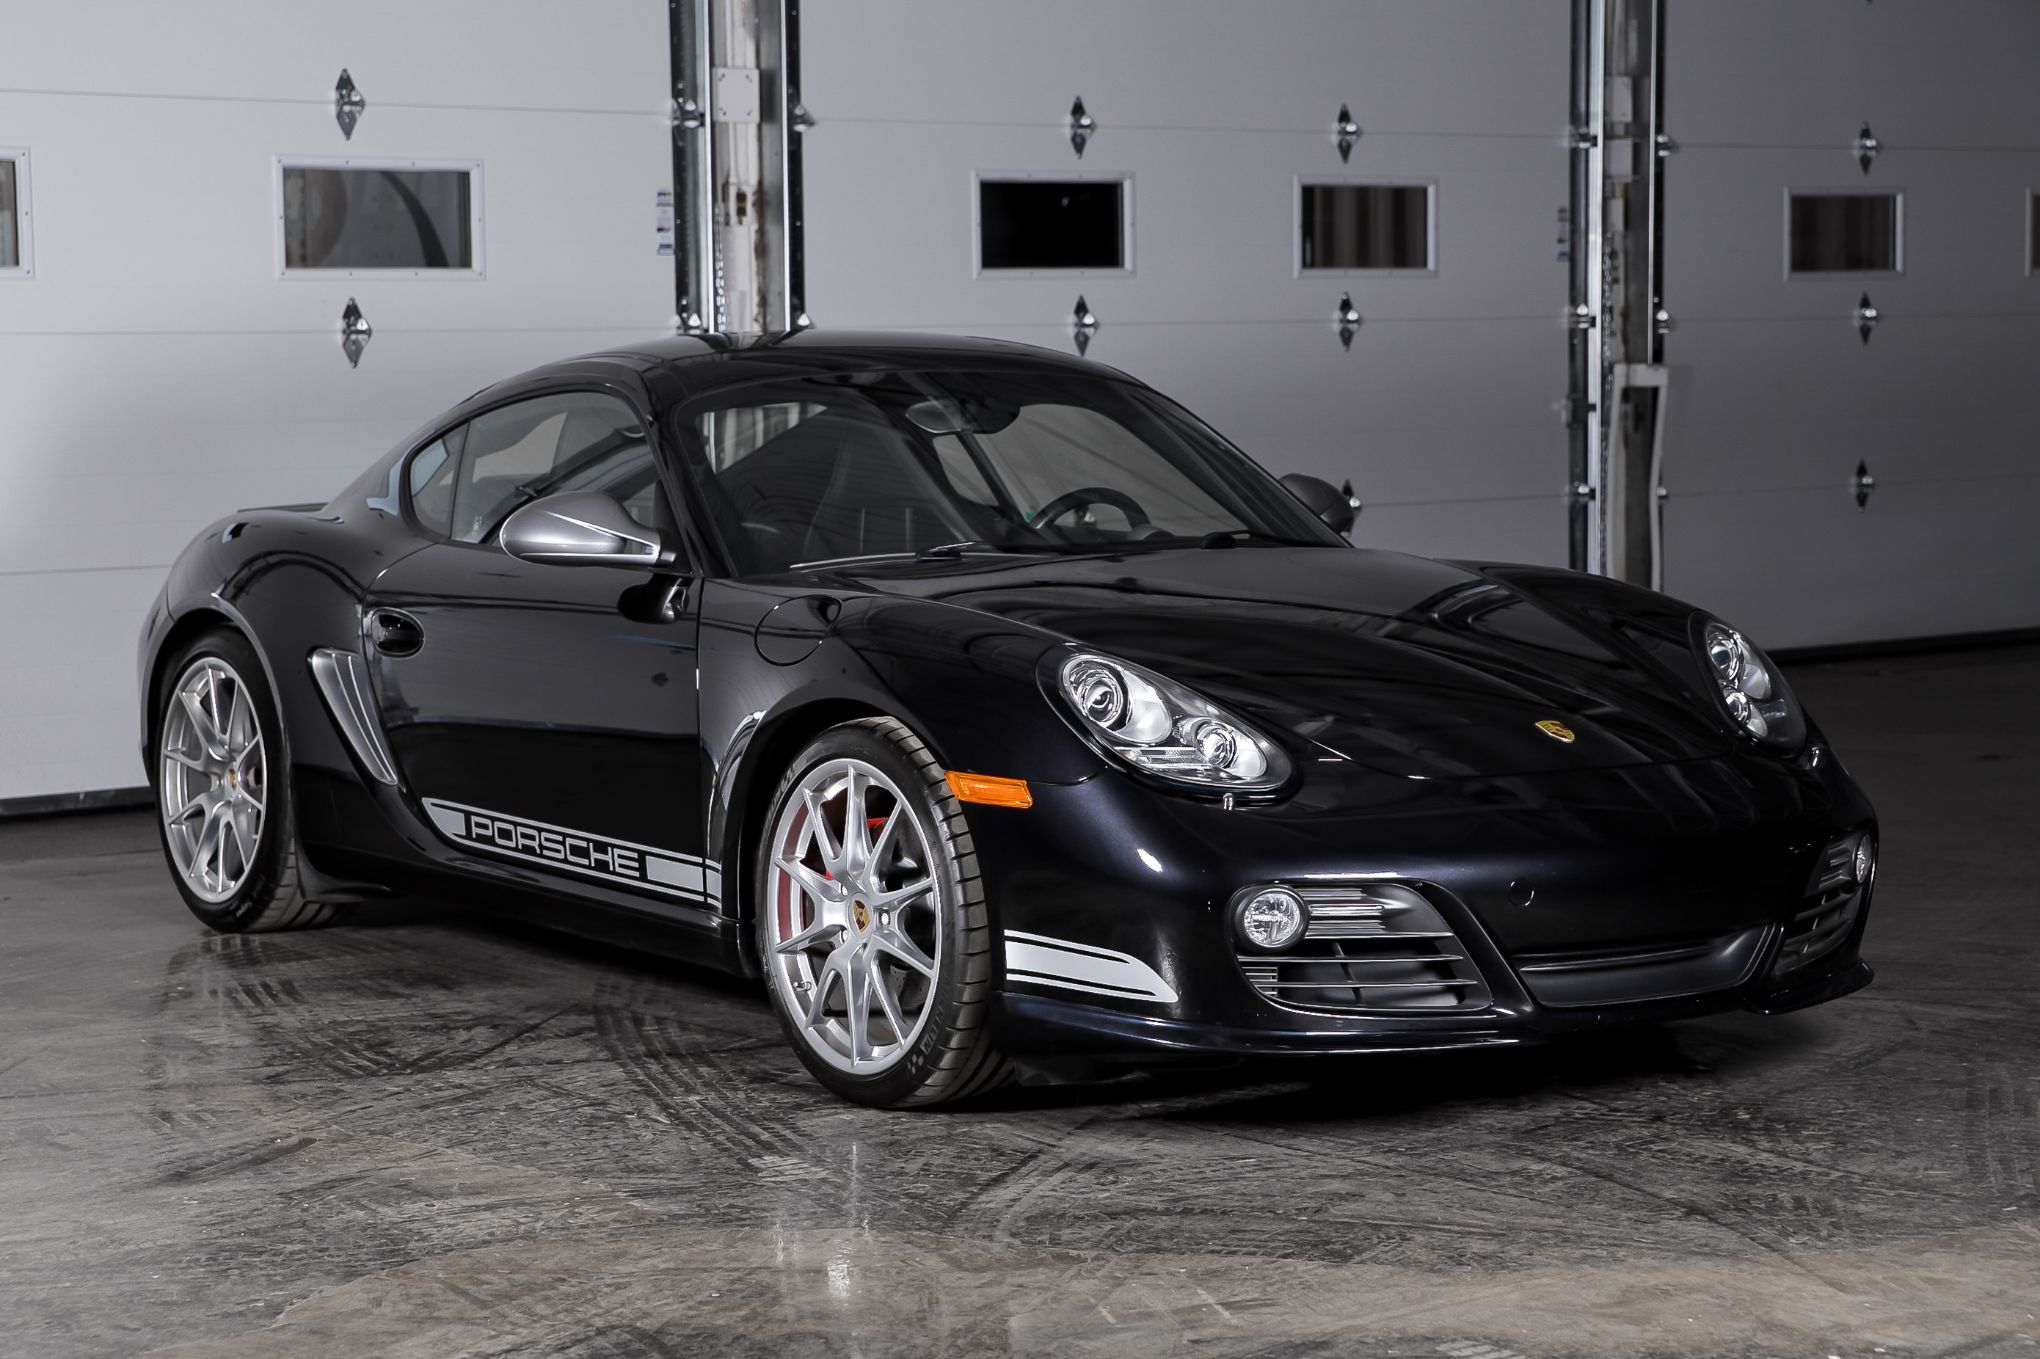 17k Mile 2012 Porsche 987 Cayman R 6 Speed Pcarmarket